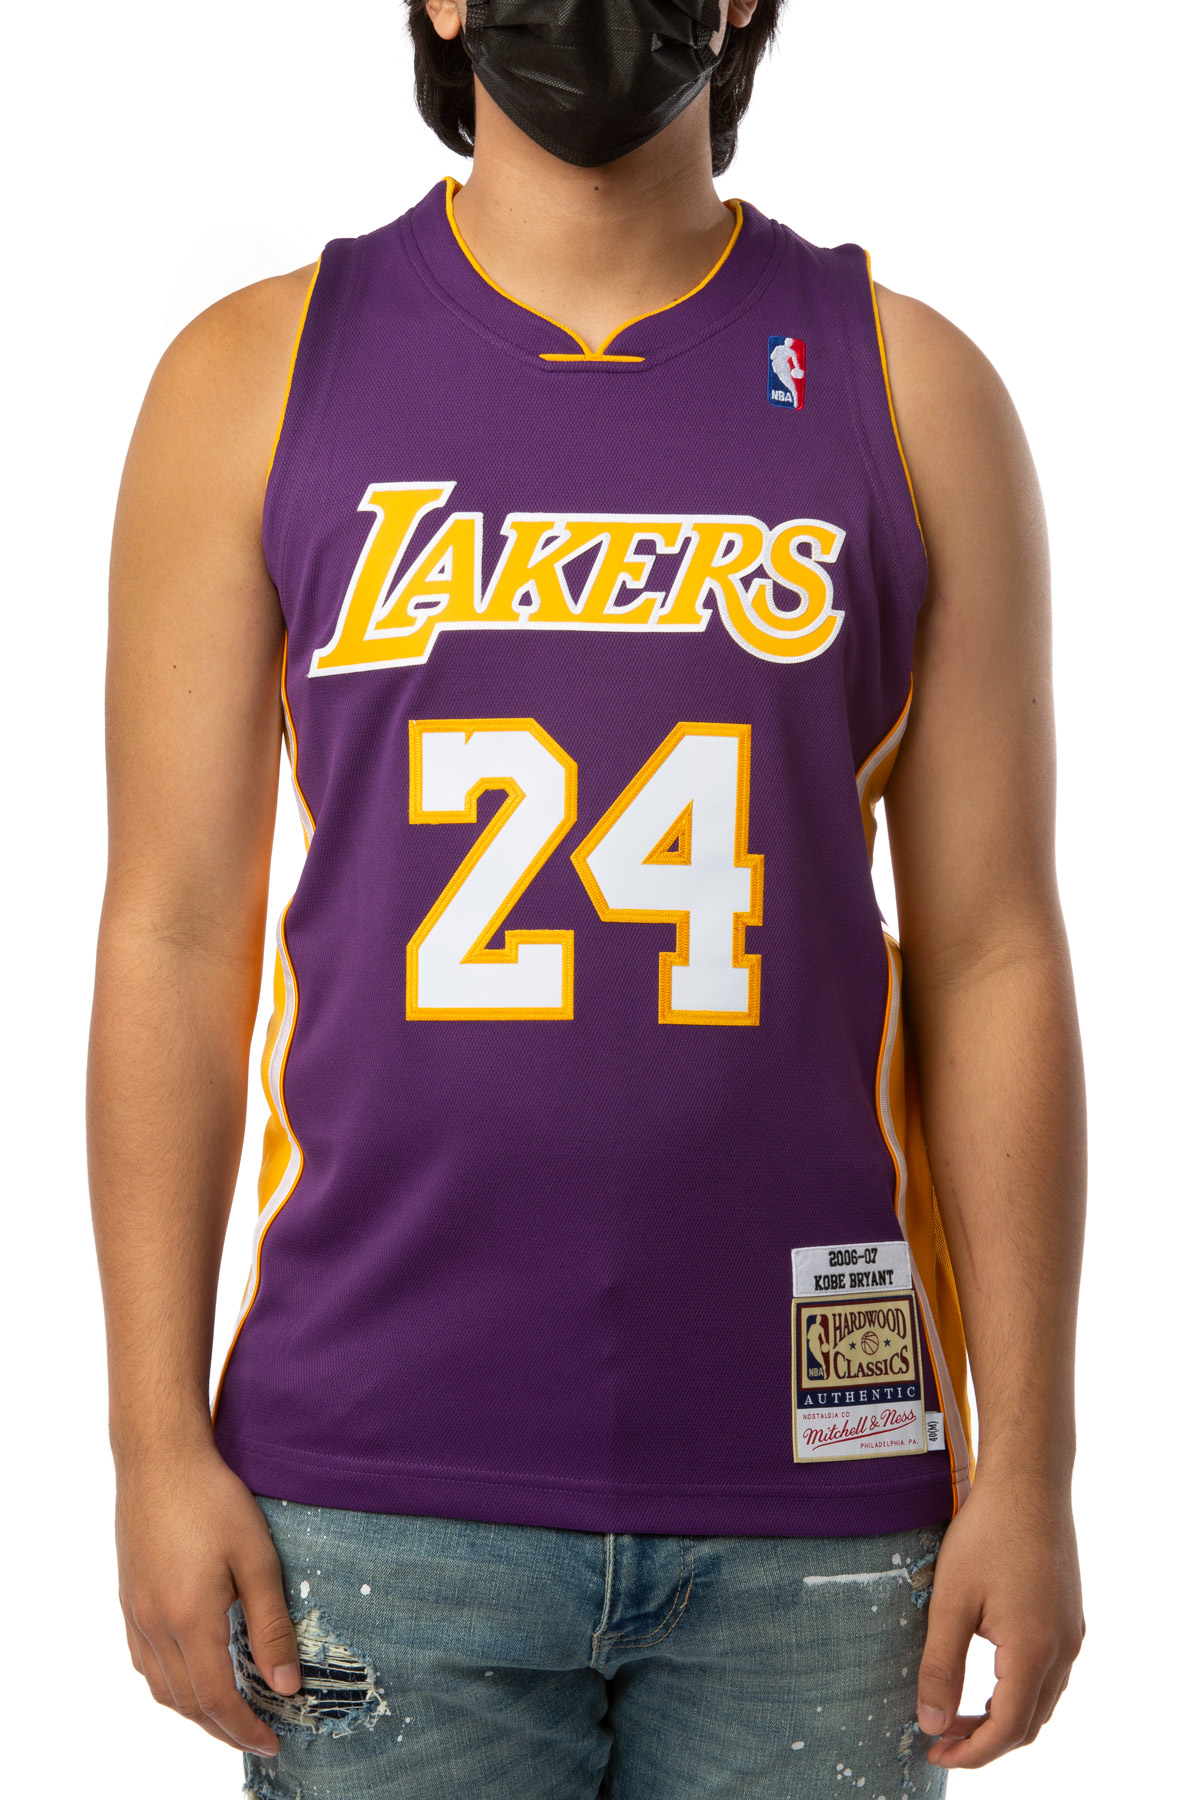 LOS ANGELES LAKERS KOBE BRYANT 2006-07 AUTHENTIC JERSEY